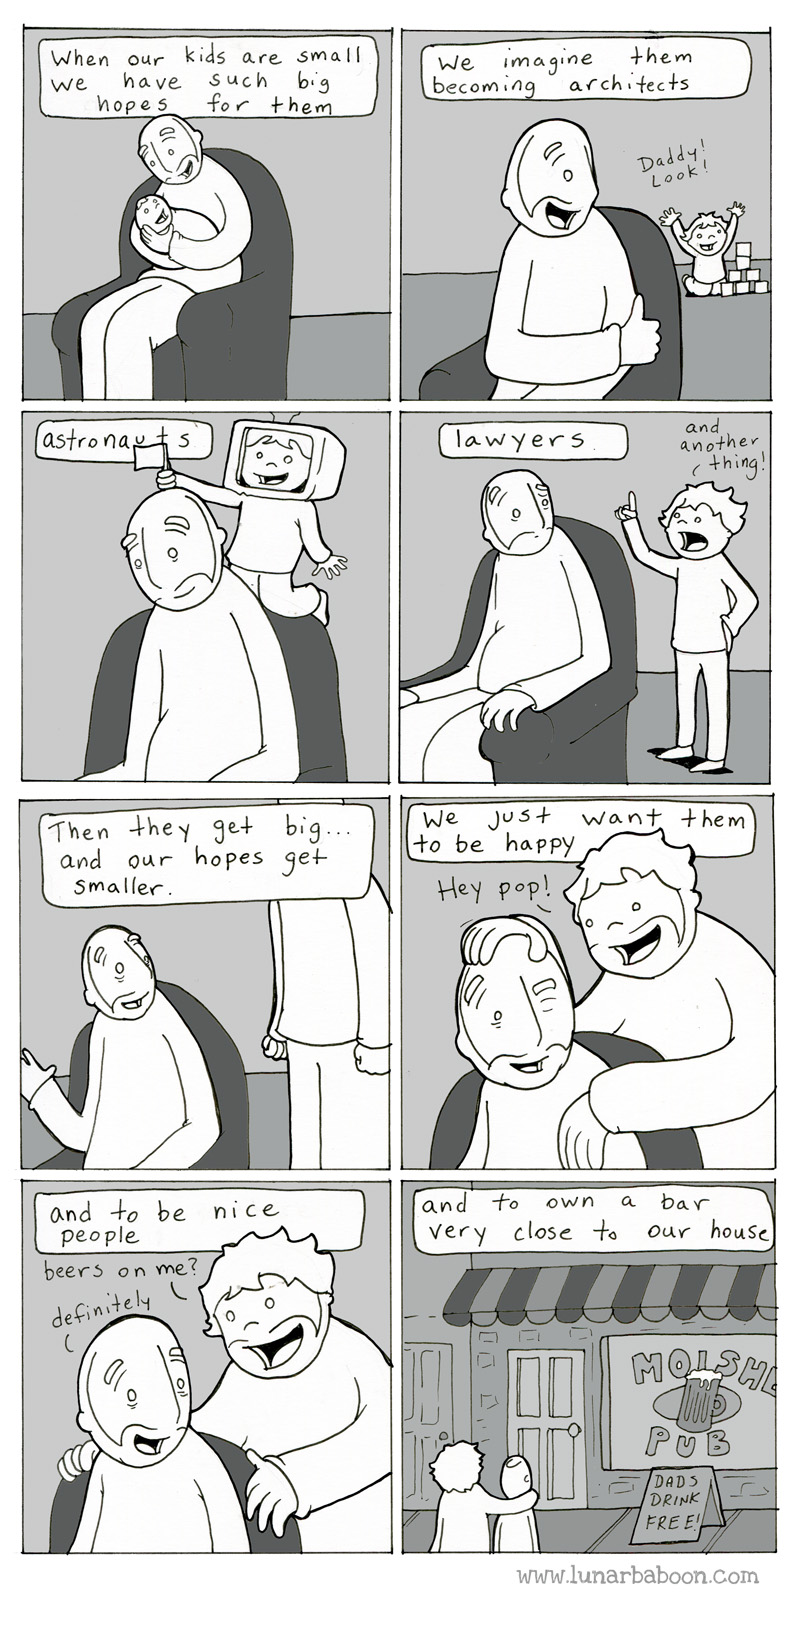 lunarbaboon-comics-kids-expectation